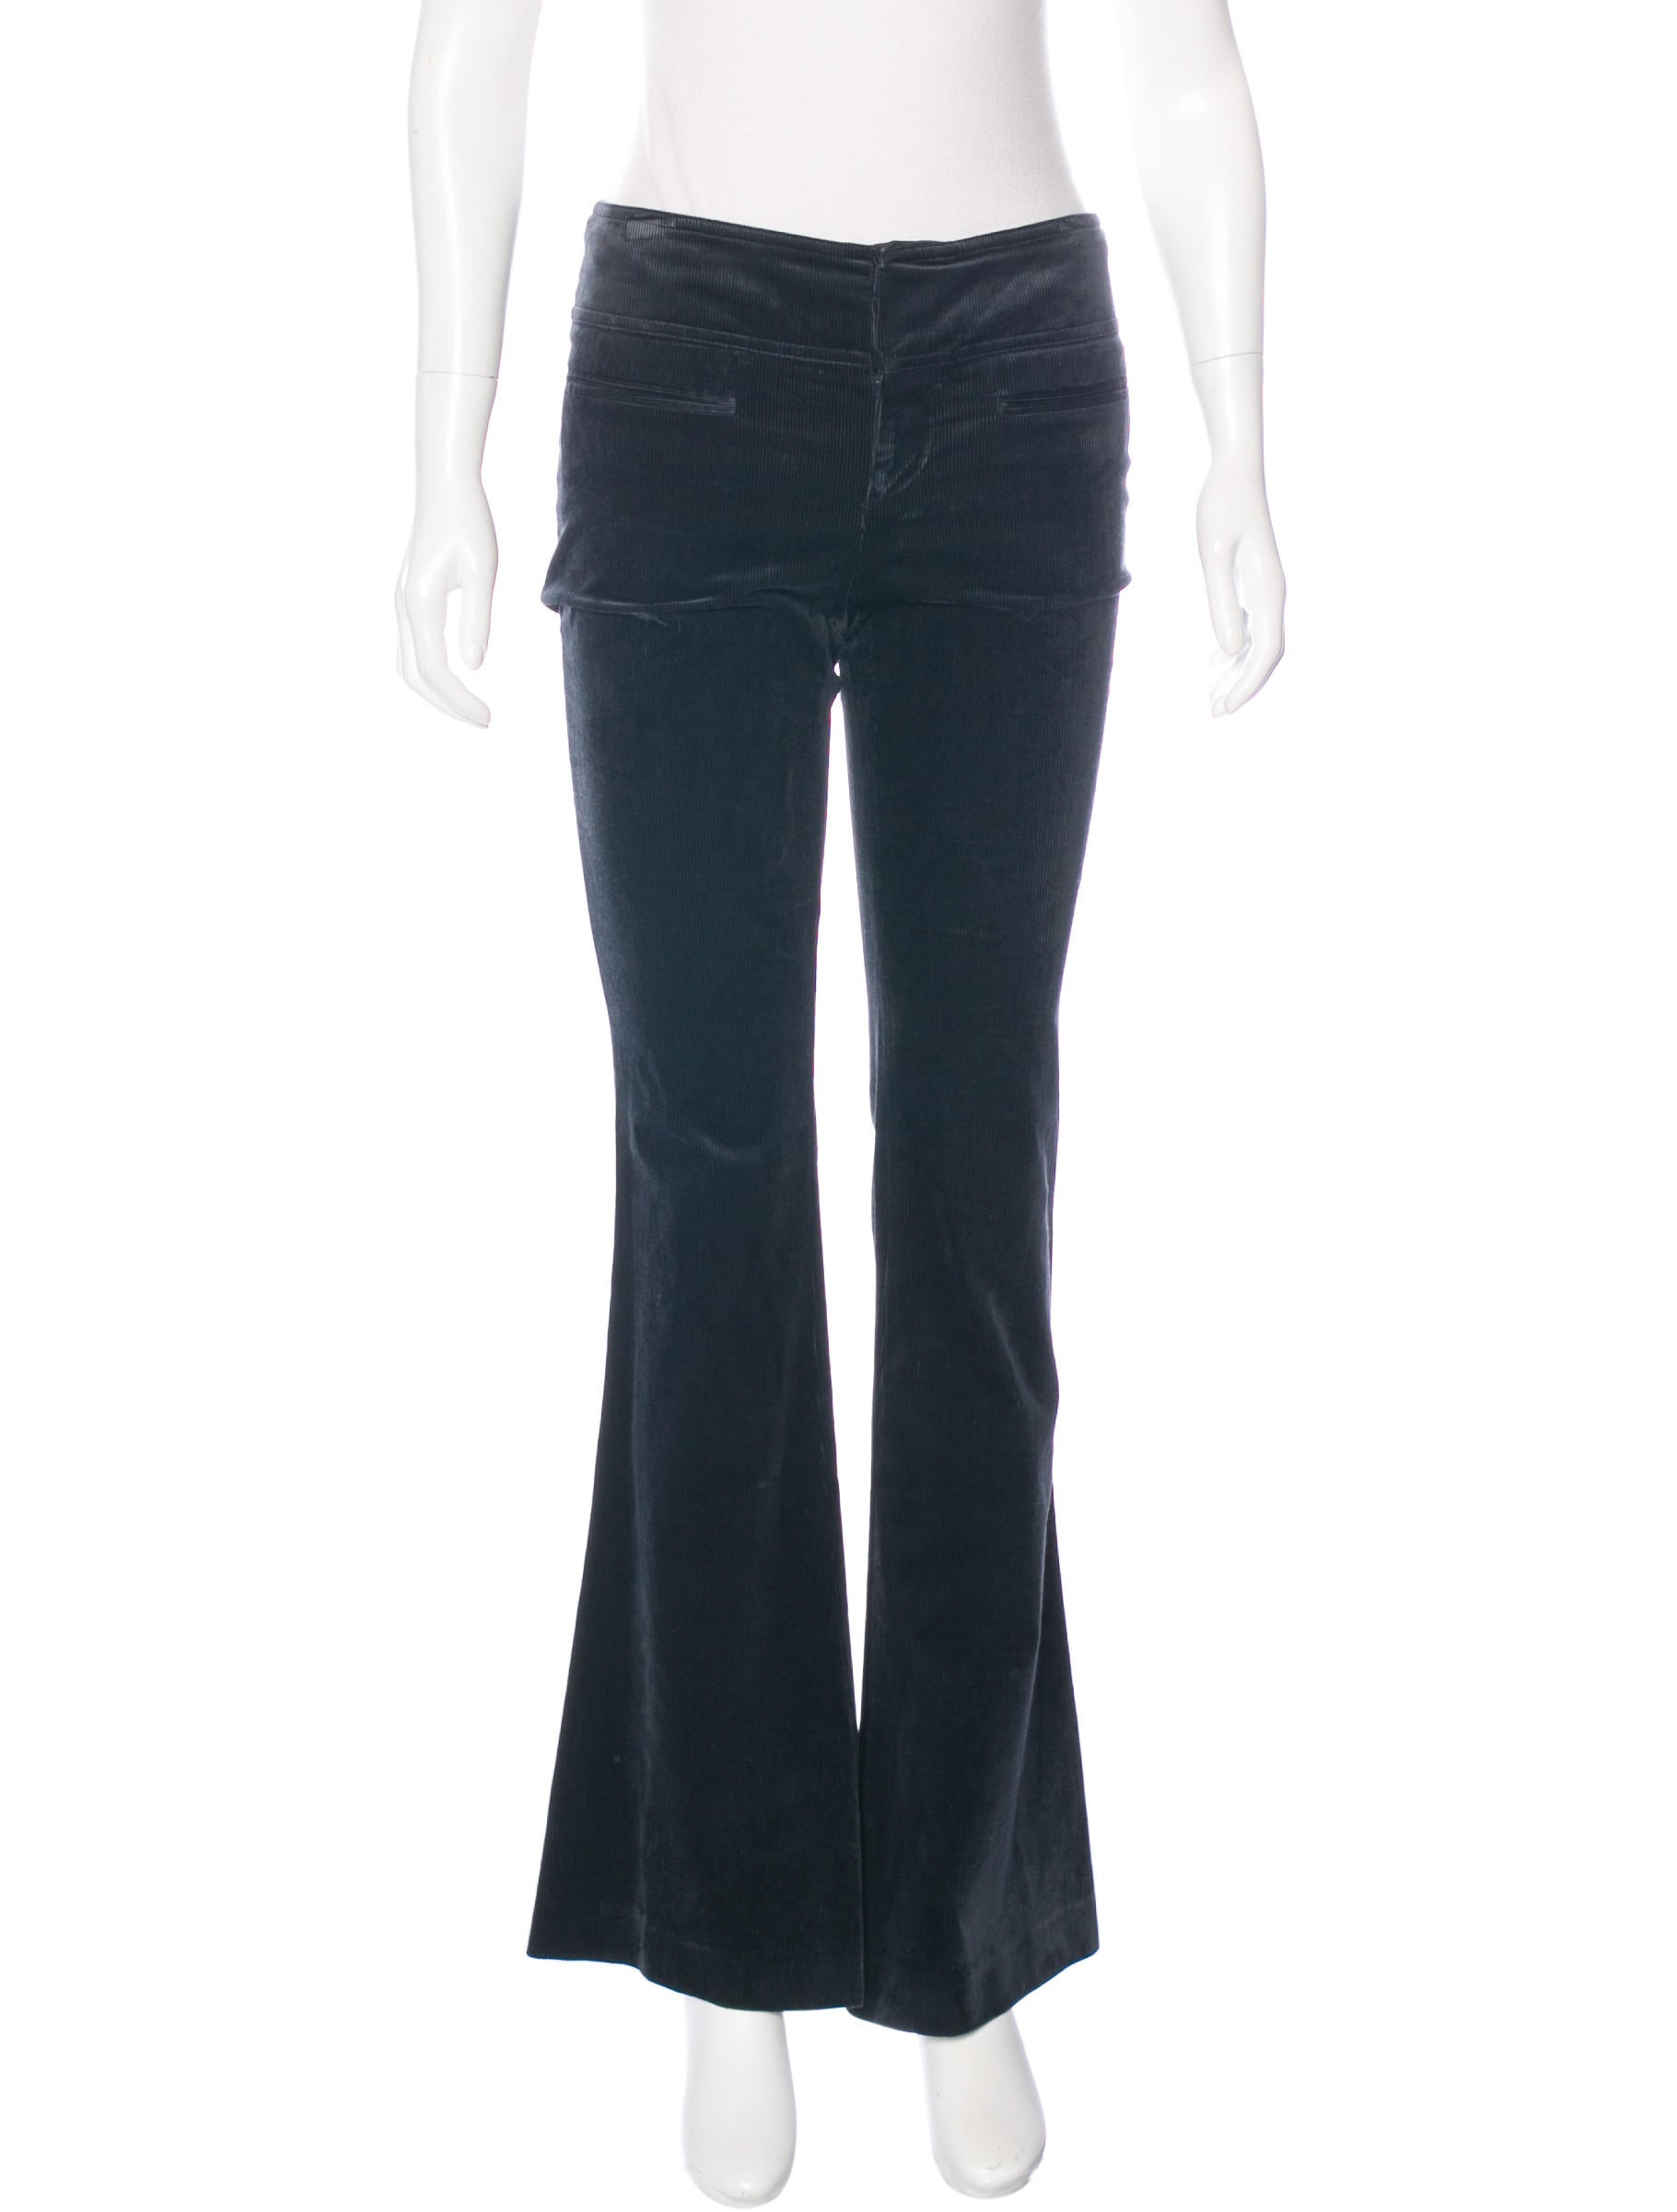 Wide leg corduroy pants with paper bag waist styling, raw-edged trims, a removable waist-tie belt, and exposed front zip closure. Gold-tone hardware on zip, with ring pull tab. Belt loops. Side pockets.